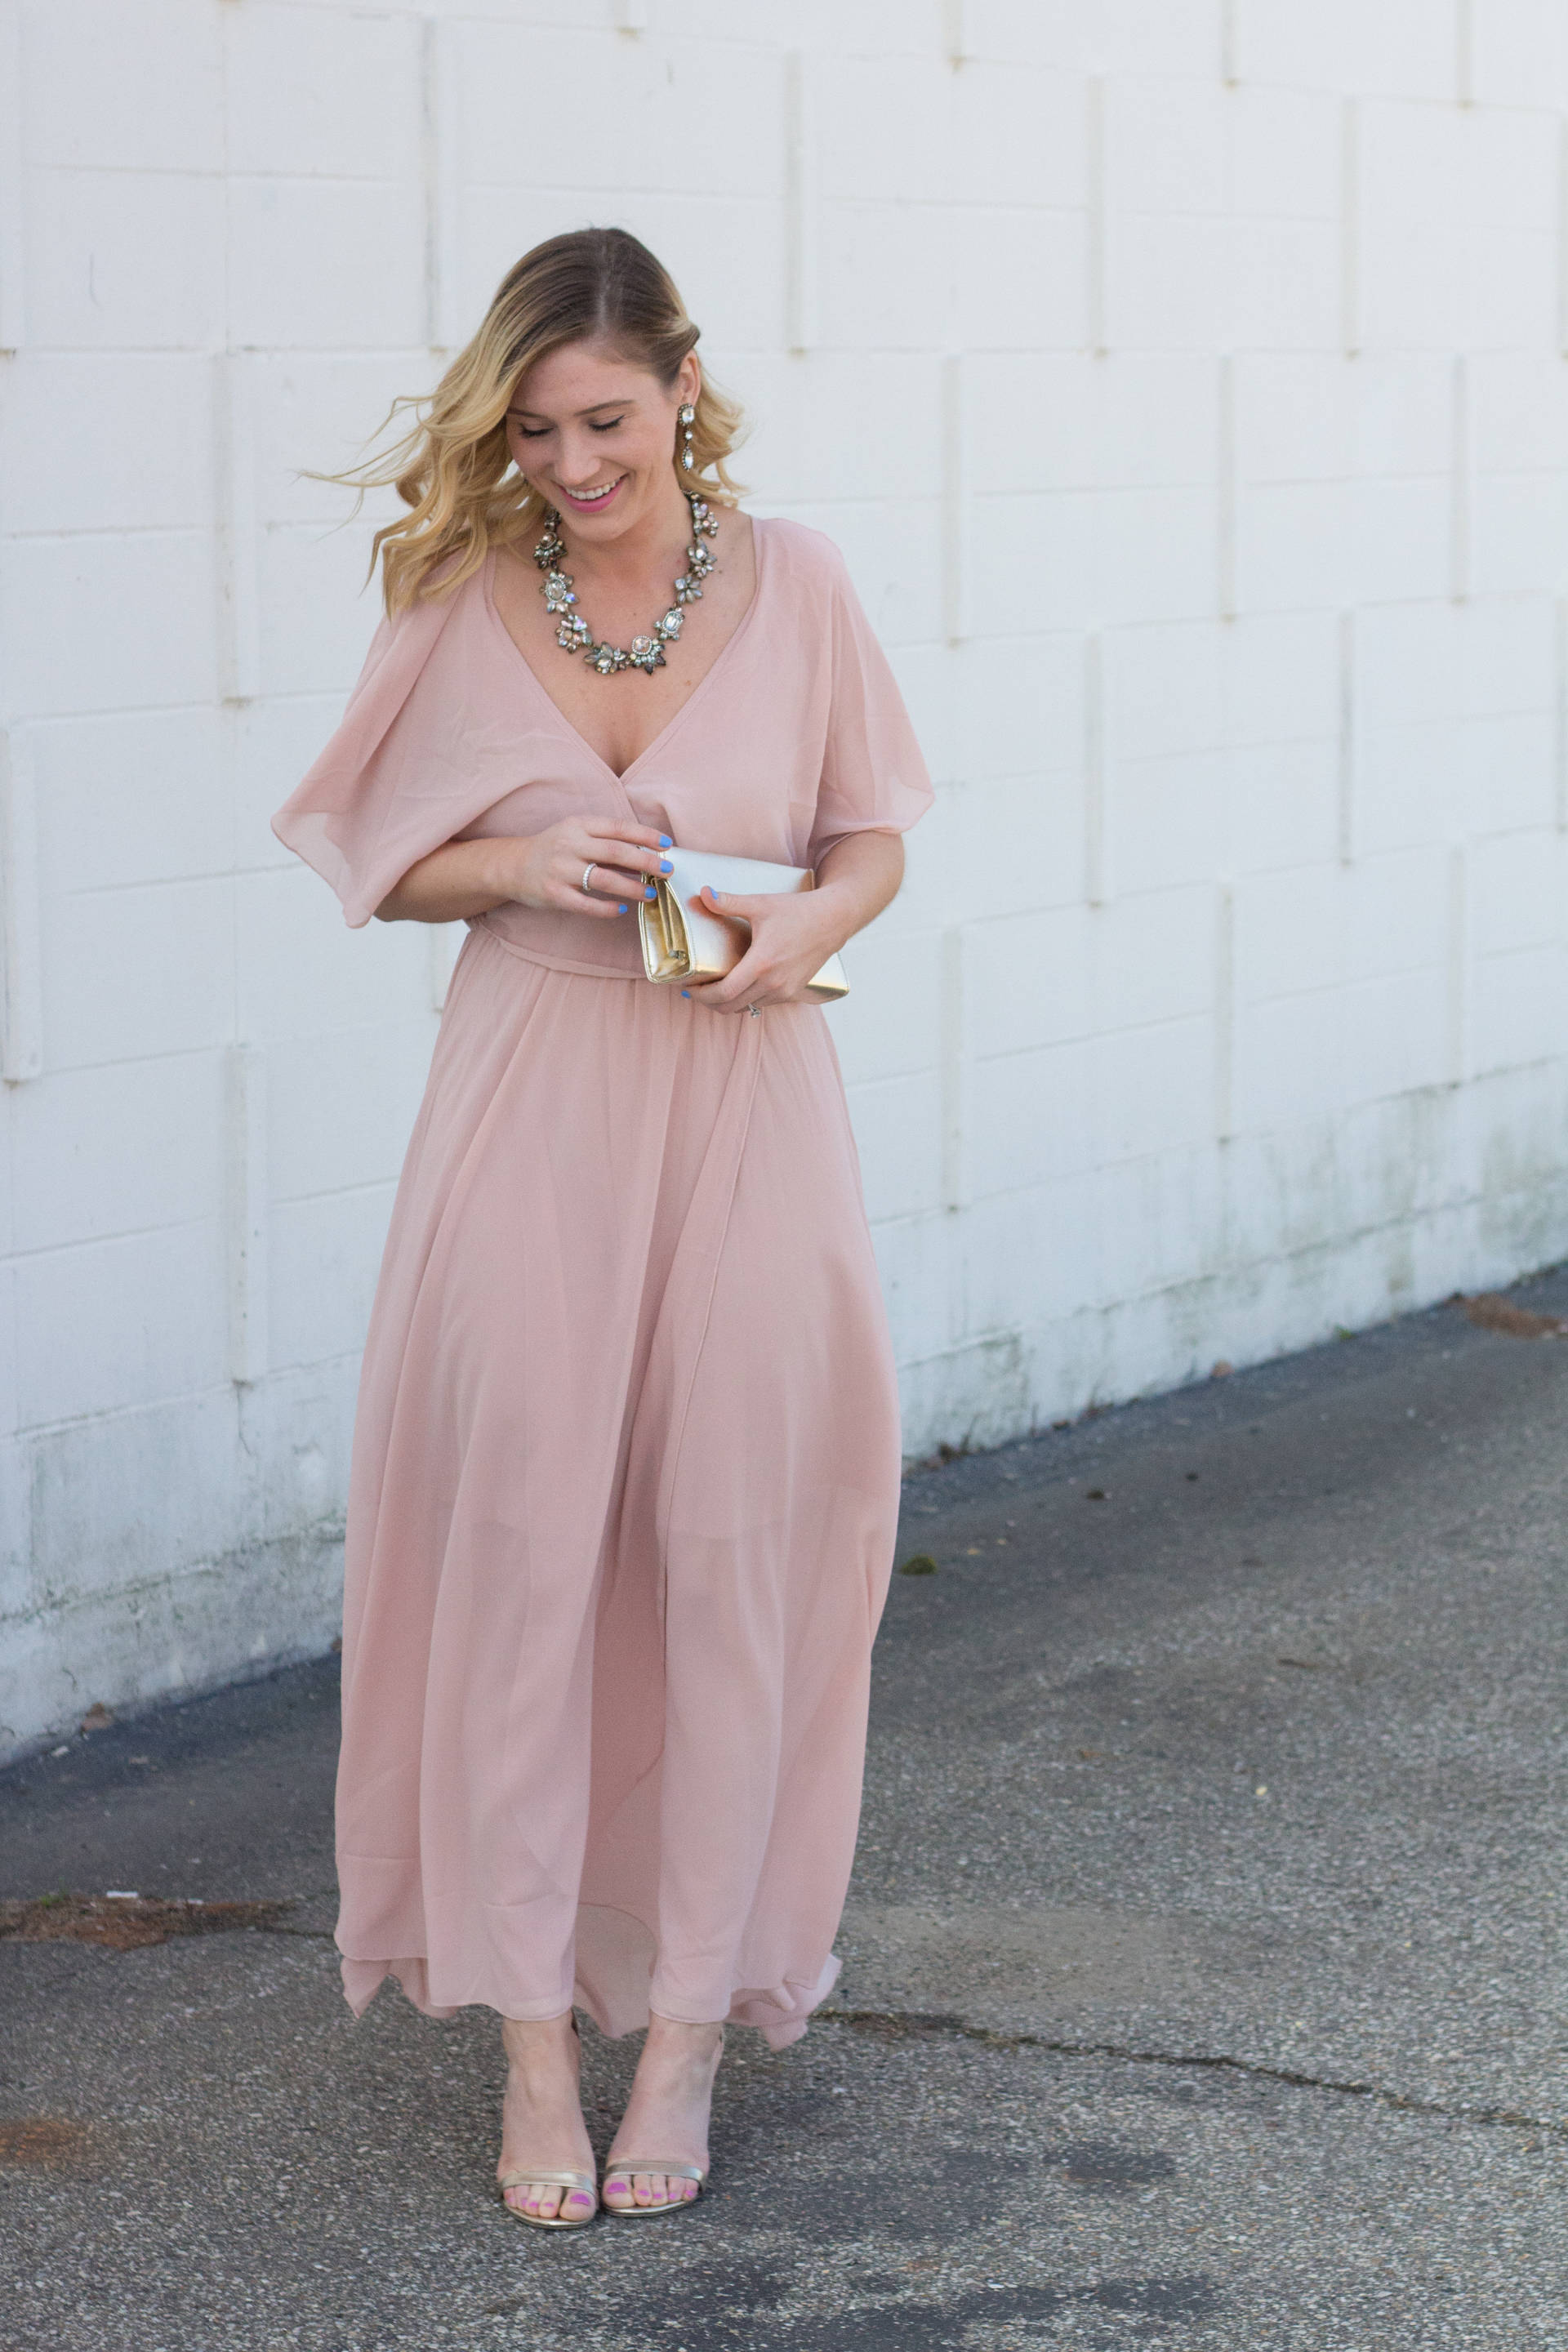 Spring Formal + Prom Inspiration - tons of picks under $75! | Gold-Hatted Lover